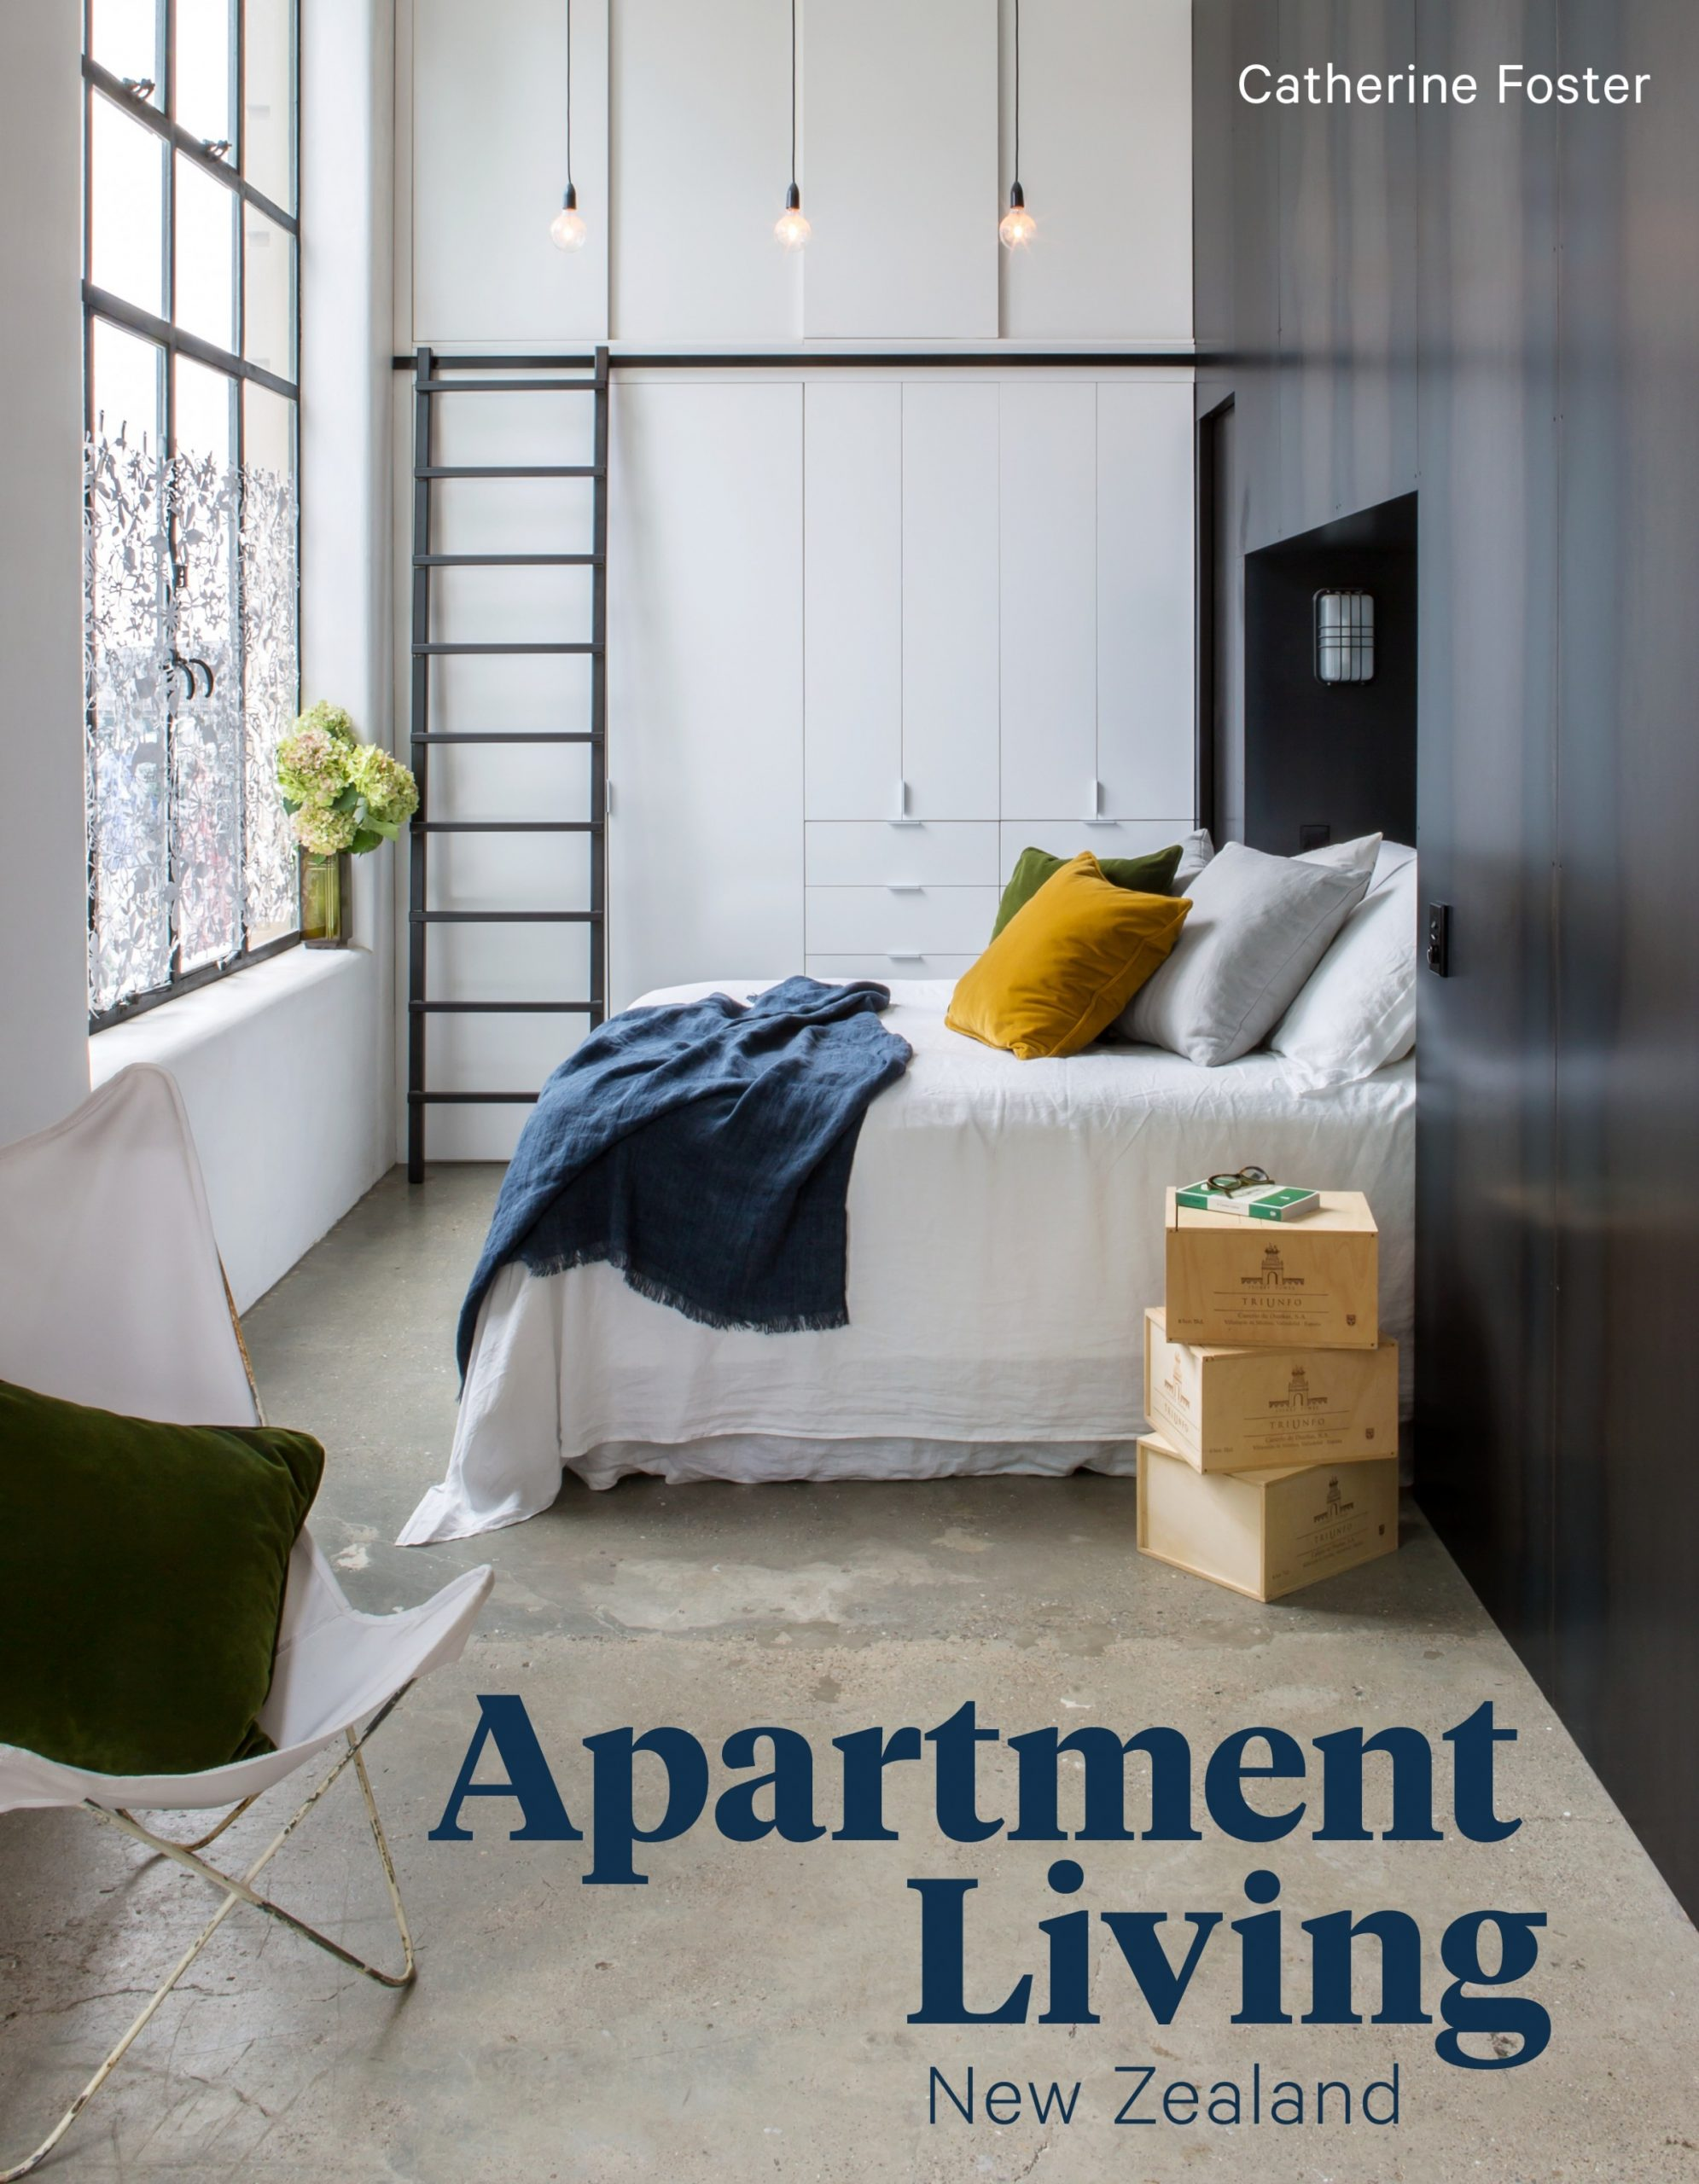 Apartment Living New Zealand by Catherine Foster - Penguin Books  - Apartment Design Nz